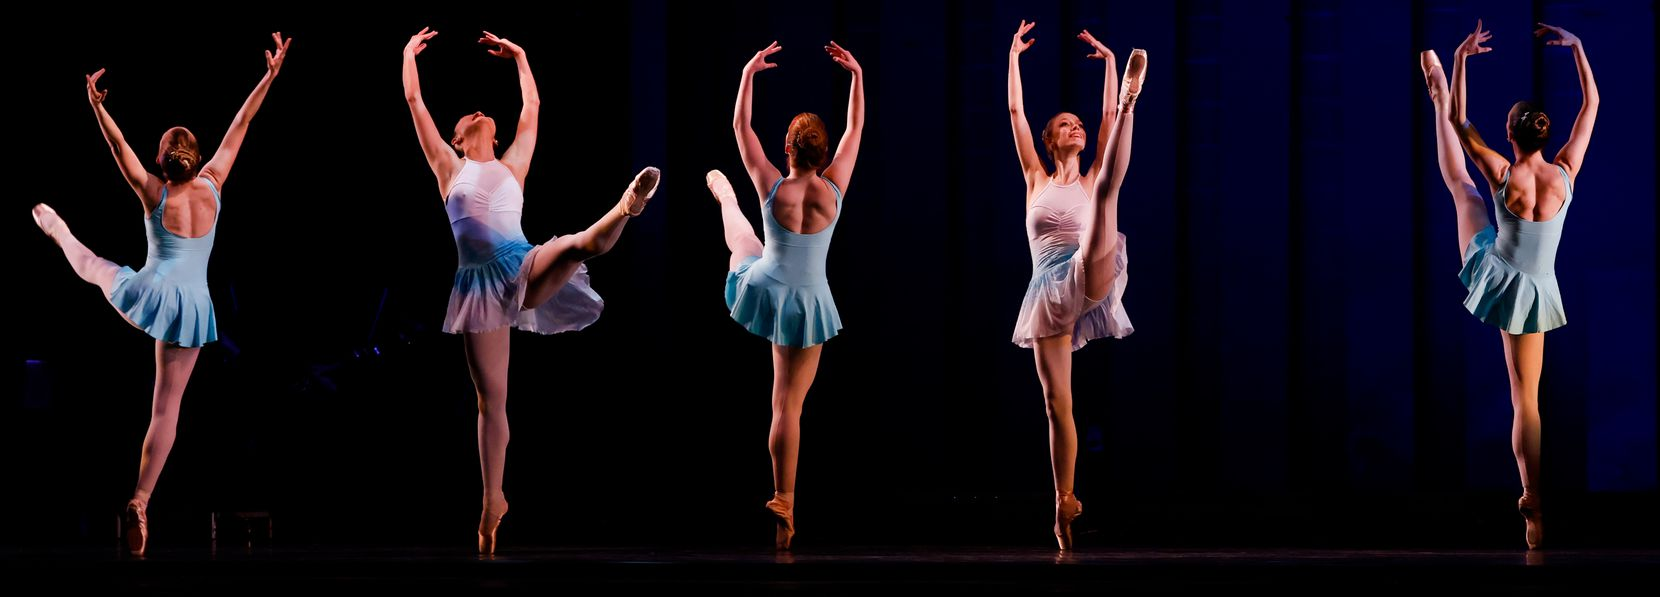 """Avant Chamber Ballet performs """"The Seasons"""" during """"Together We Dance"""" at Annette Strauss Square on Friday, March 26, 2021."""